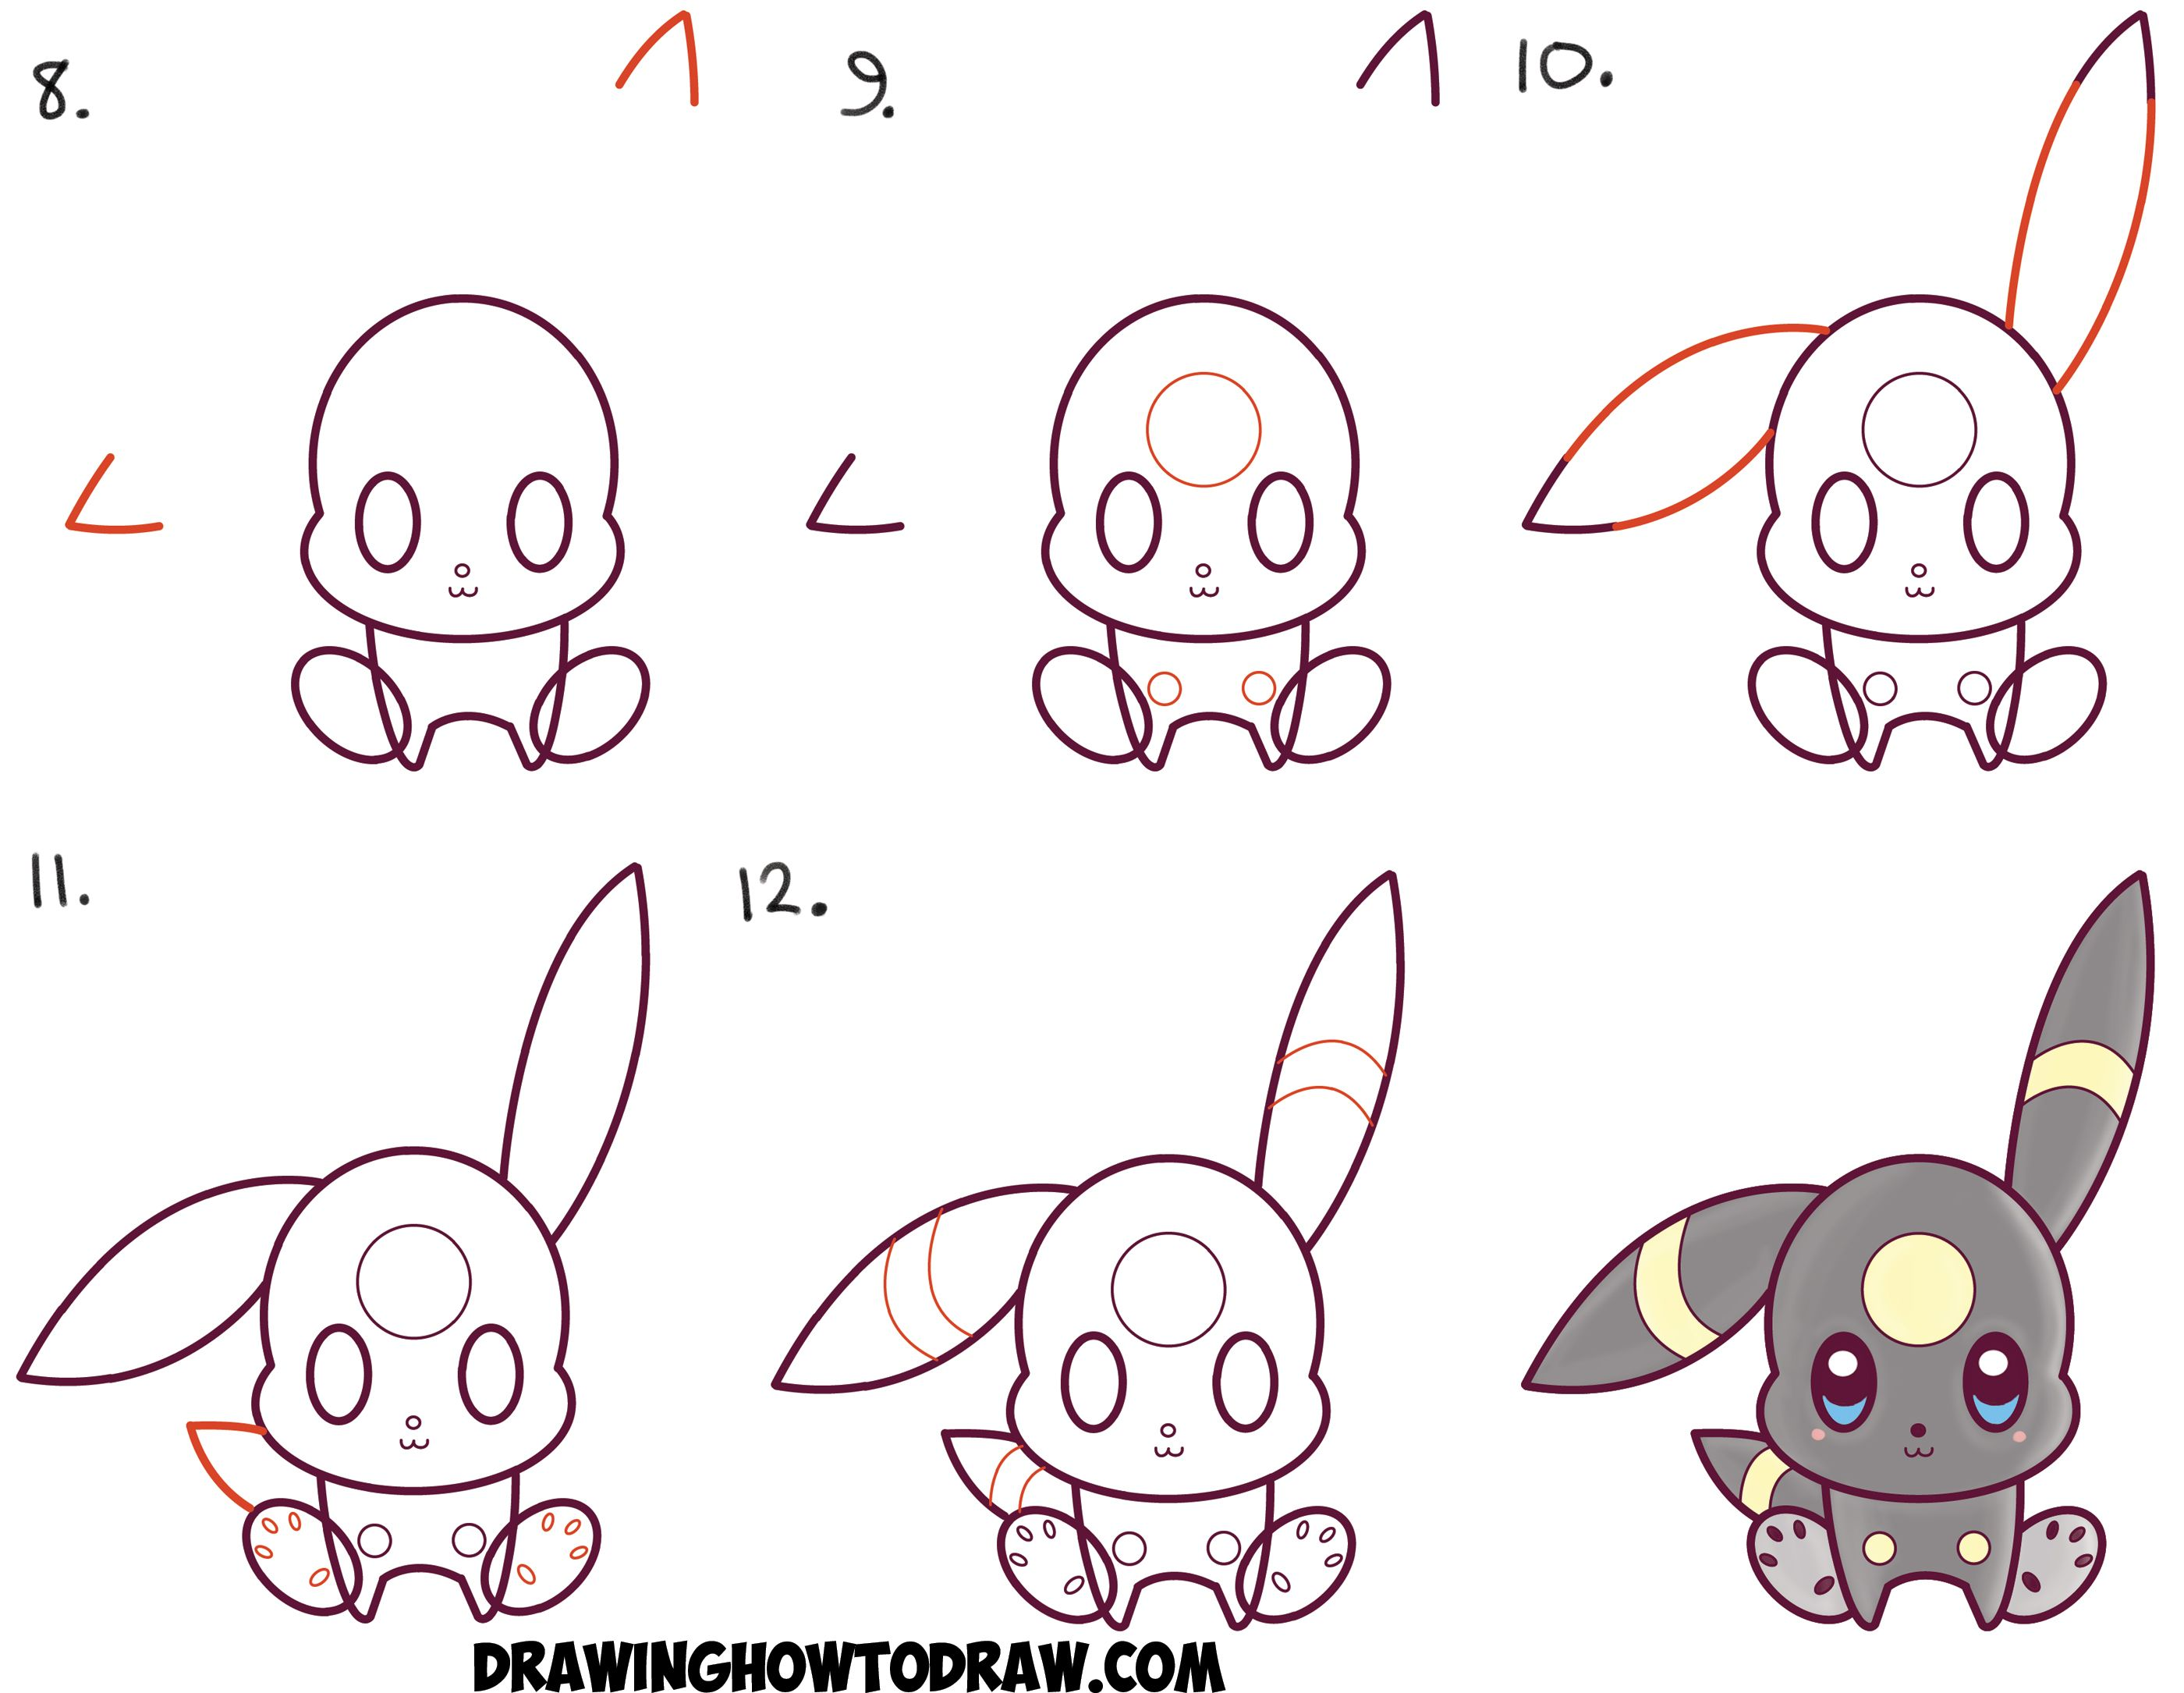 2800x2170 How To Draw Cute Kawaii Chibi Umbreon From Pokemon Easy Step By